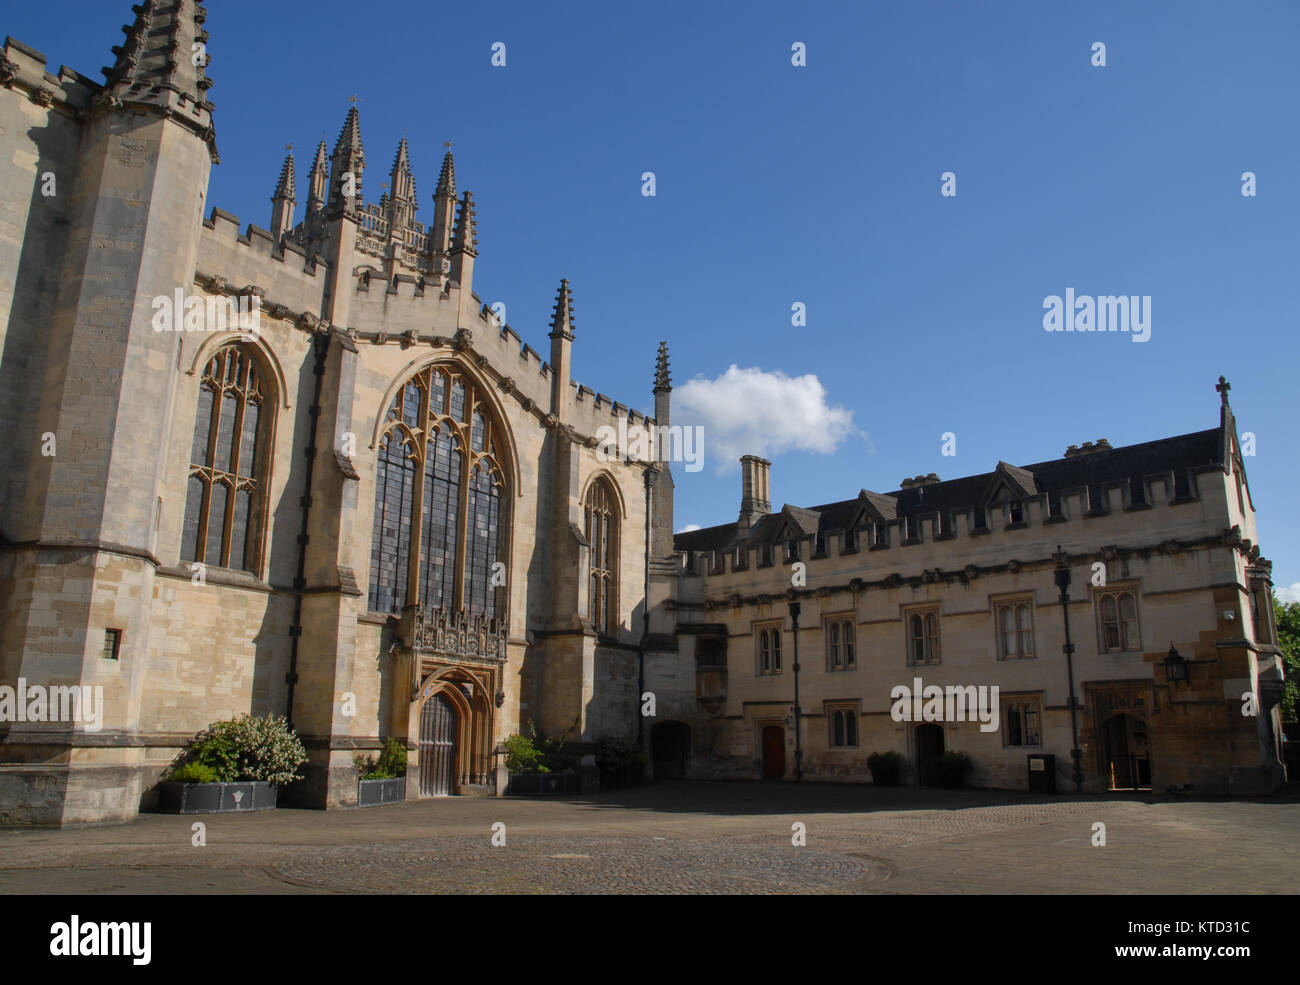 Oxford, United Kingdom - May 18, 2015: St. Johns Quad and chapel at Magdalen College Stock Photo